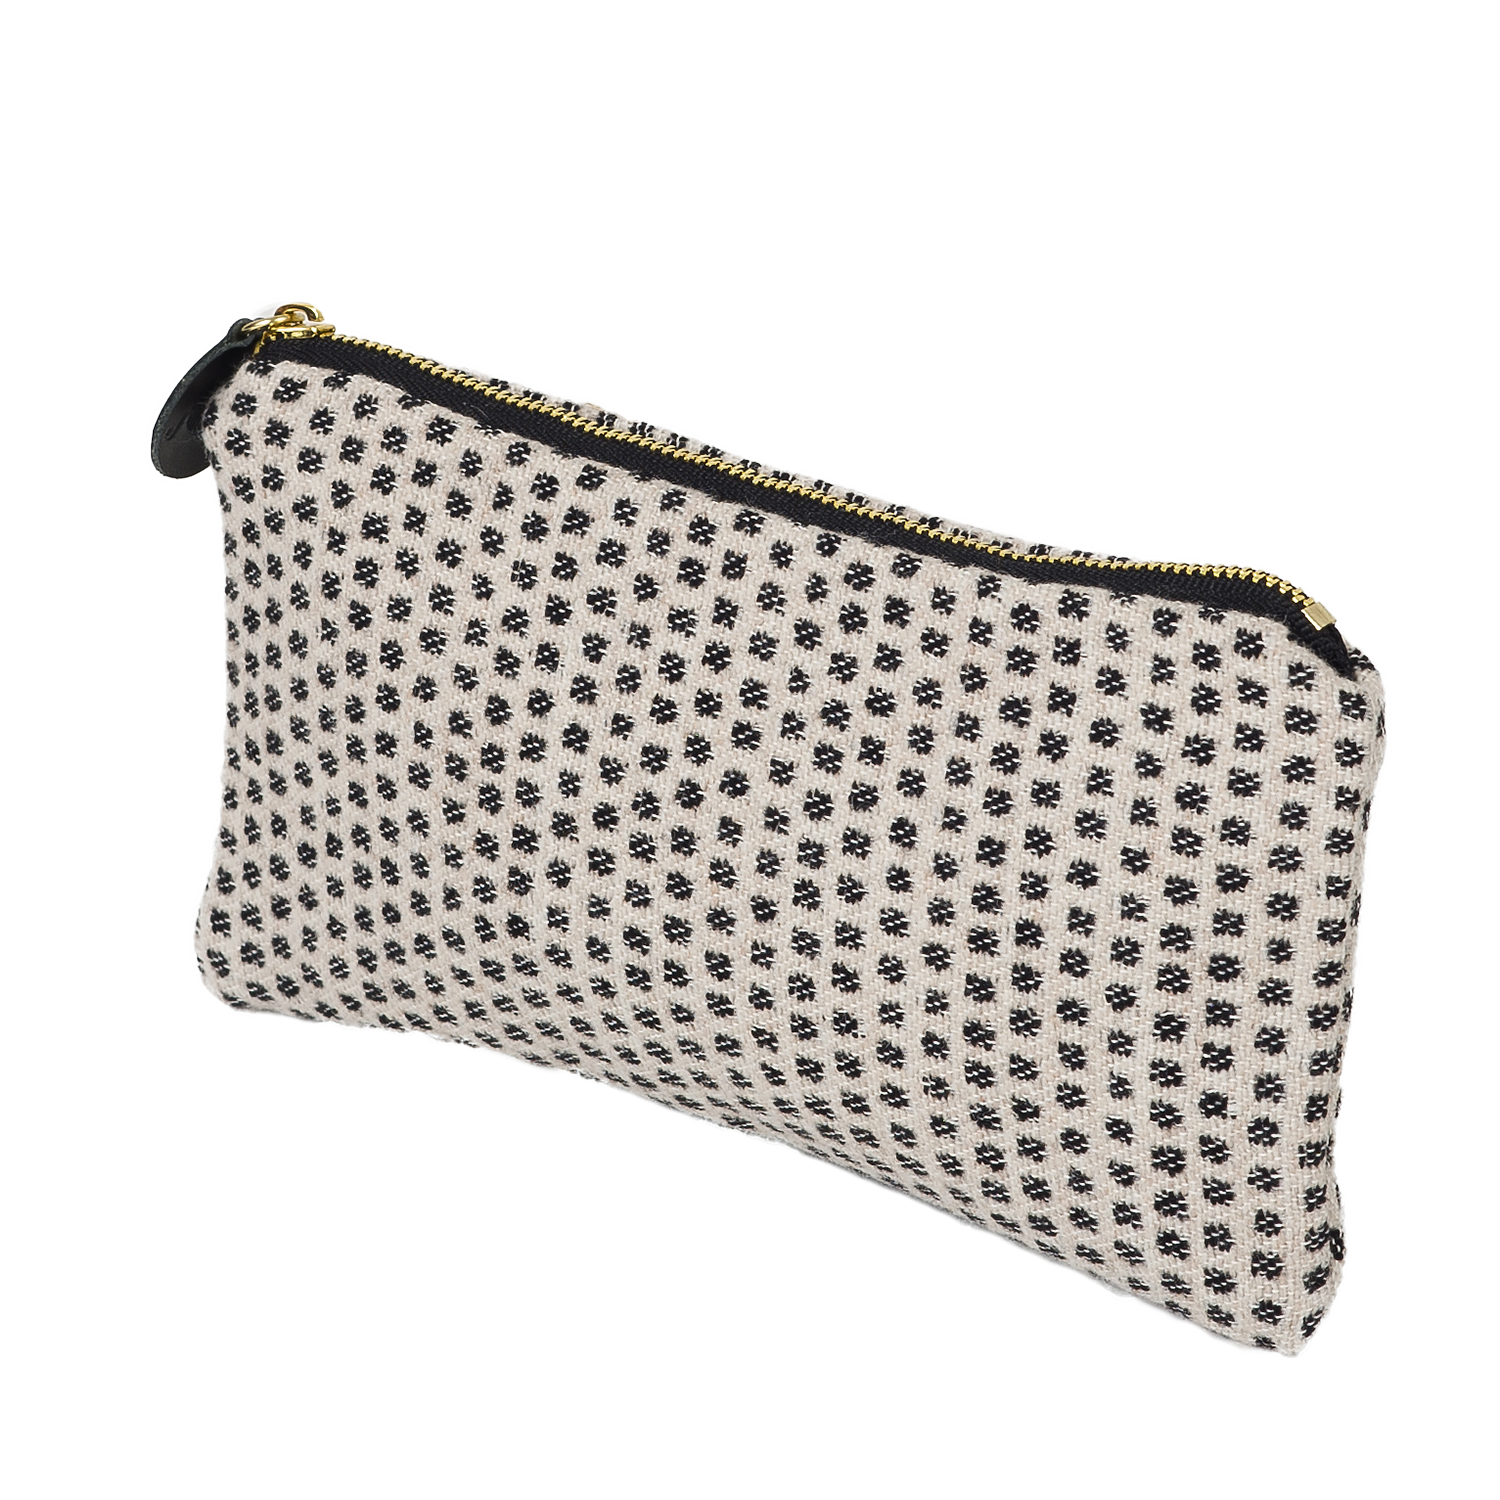 Merino Lambswool Zip Purse - Classic Clarendon Black/Grey- Tori Murphy